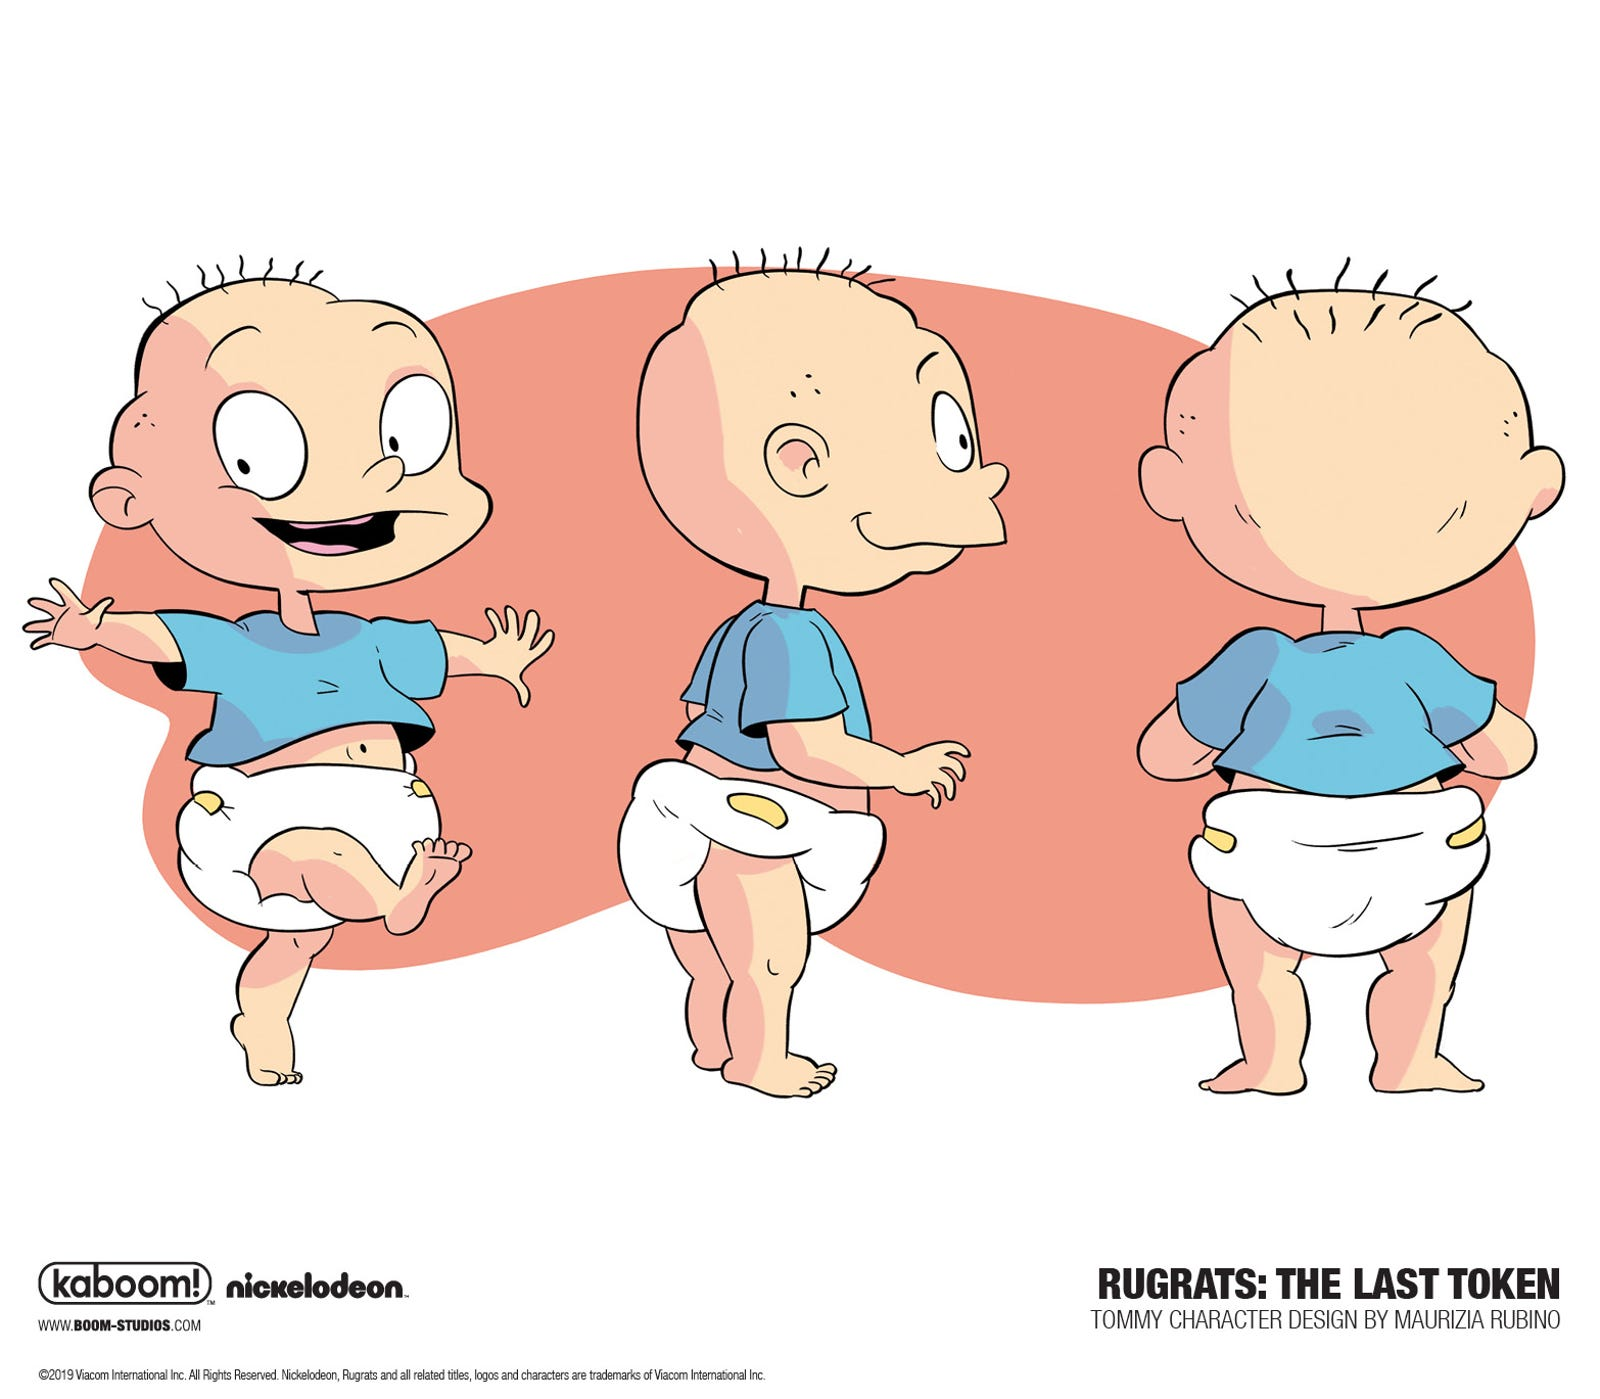 An exclusive look at Maurizia Rubino's designs for Tommy, Chuckie, Phil, and Lil in The Last Token.